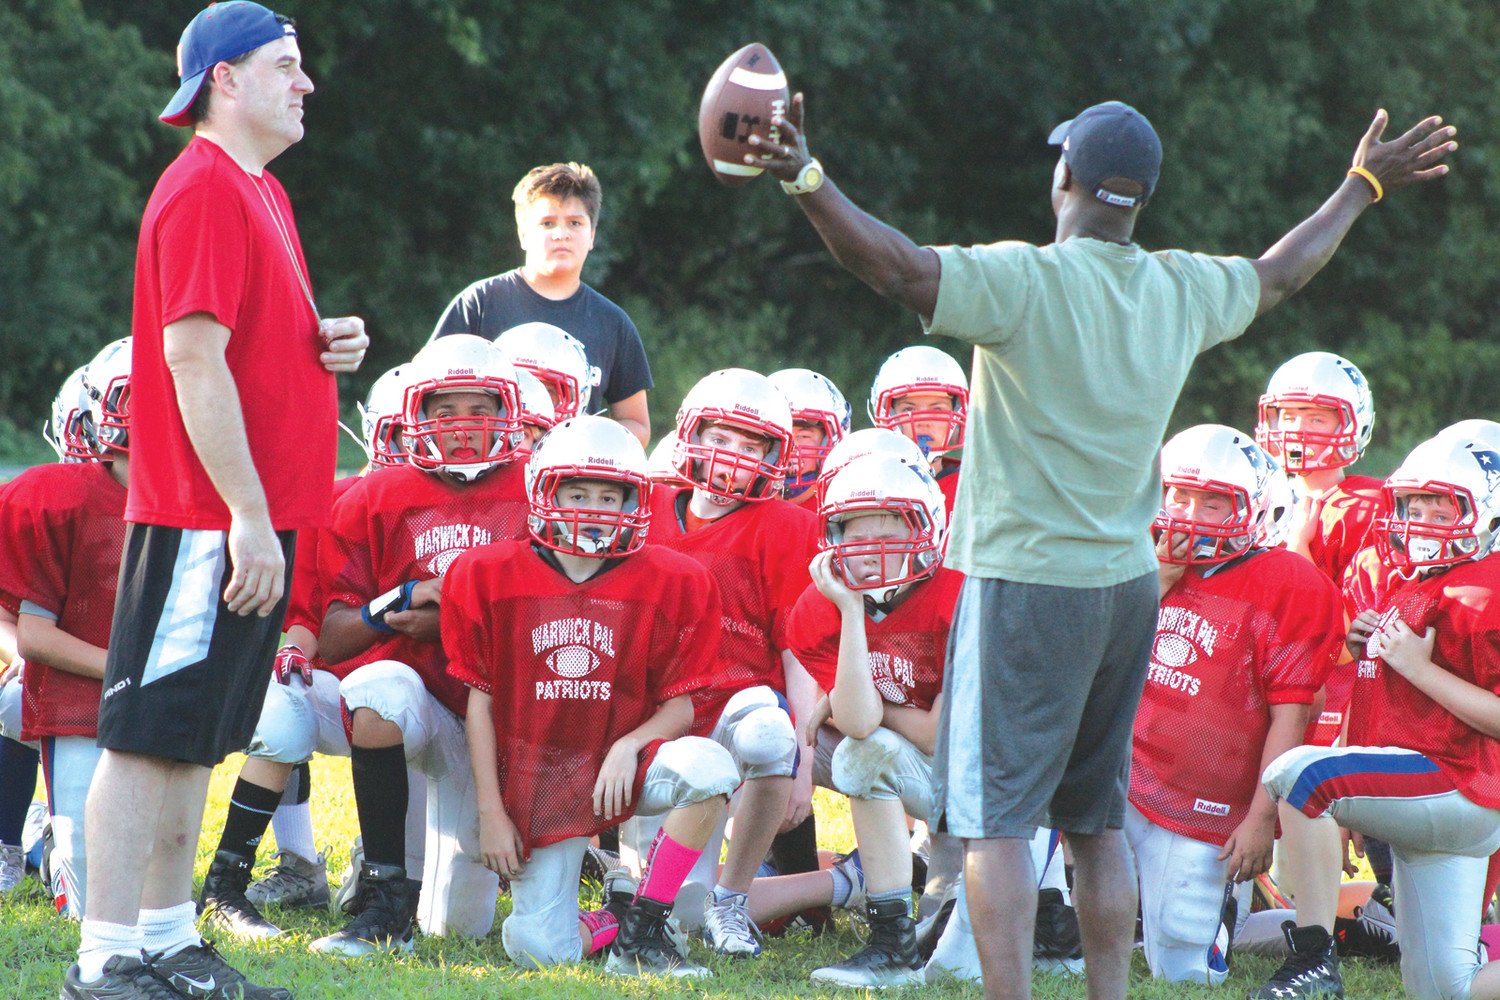 HUDDLE UP: A Warwick Police Athletic League football team listens to a coach's instructions during practice.